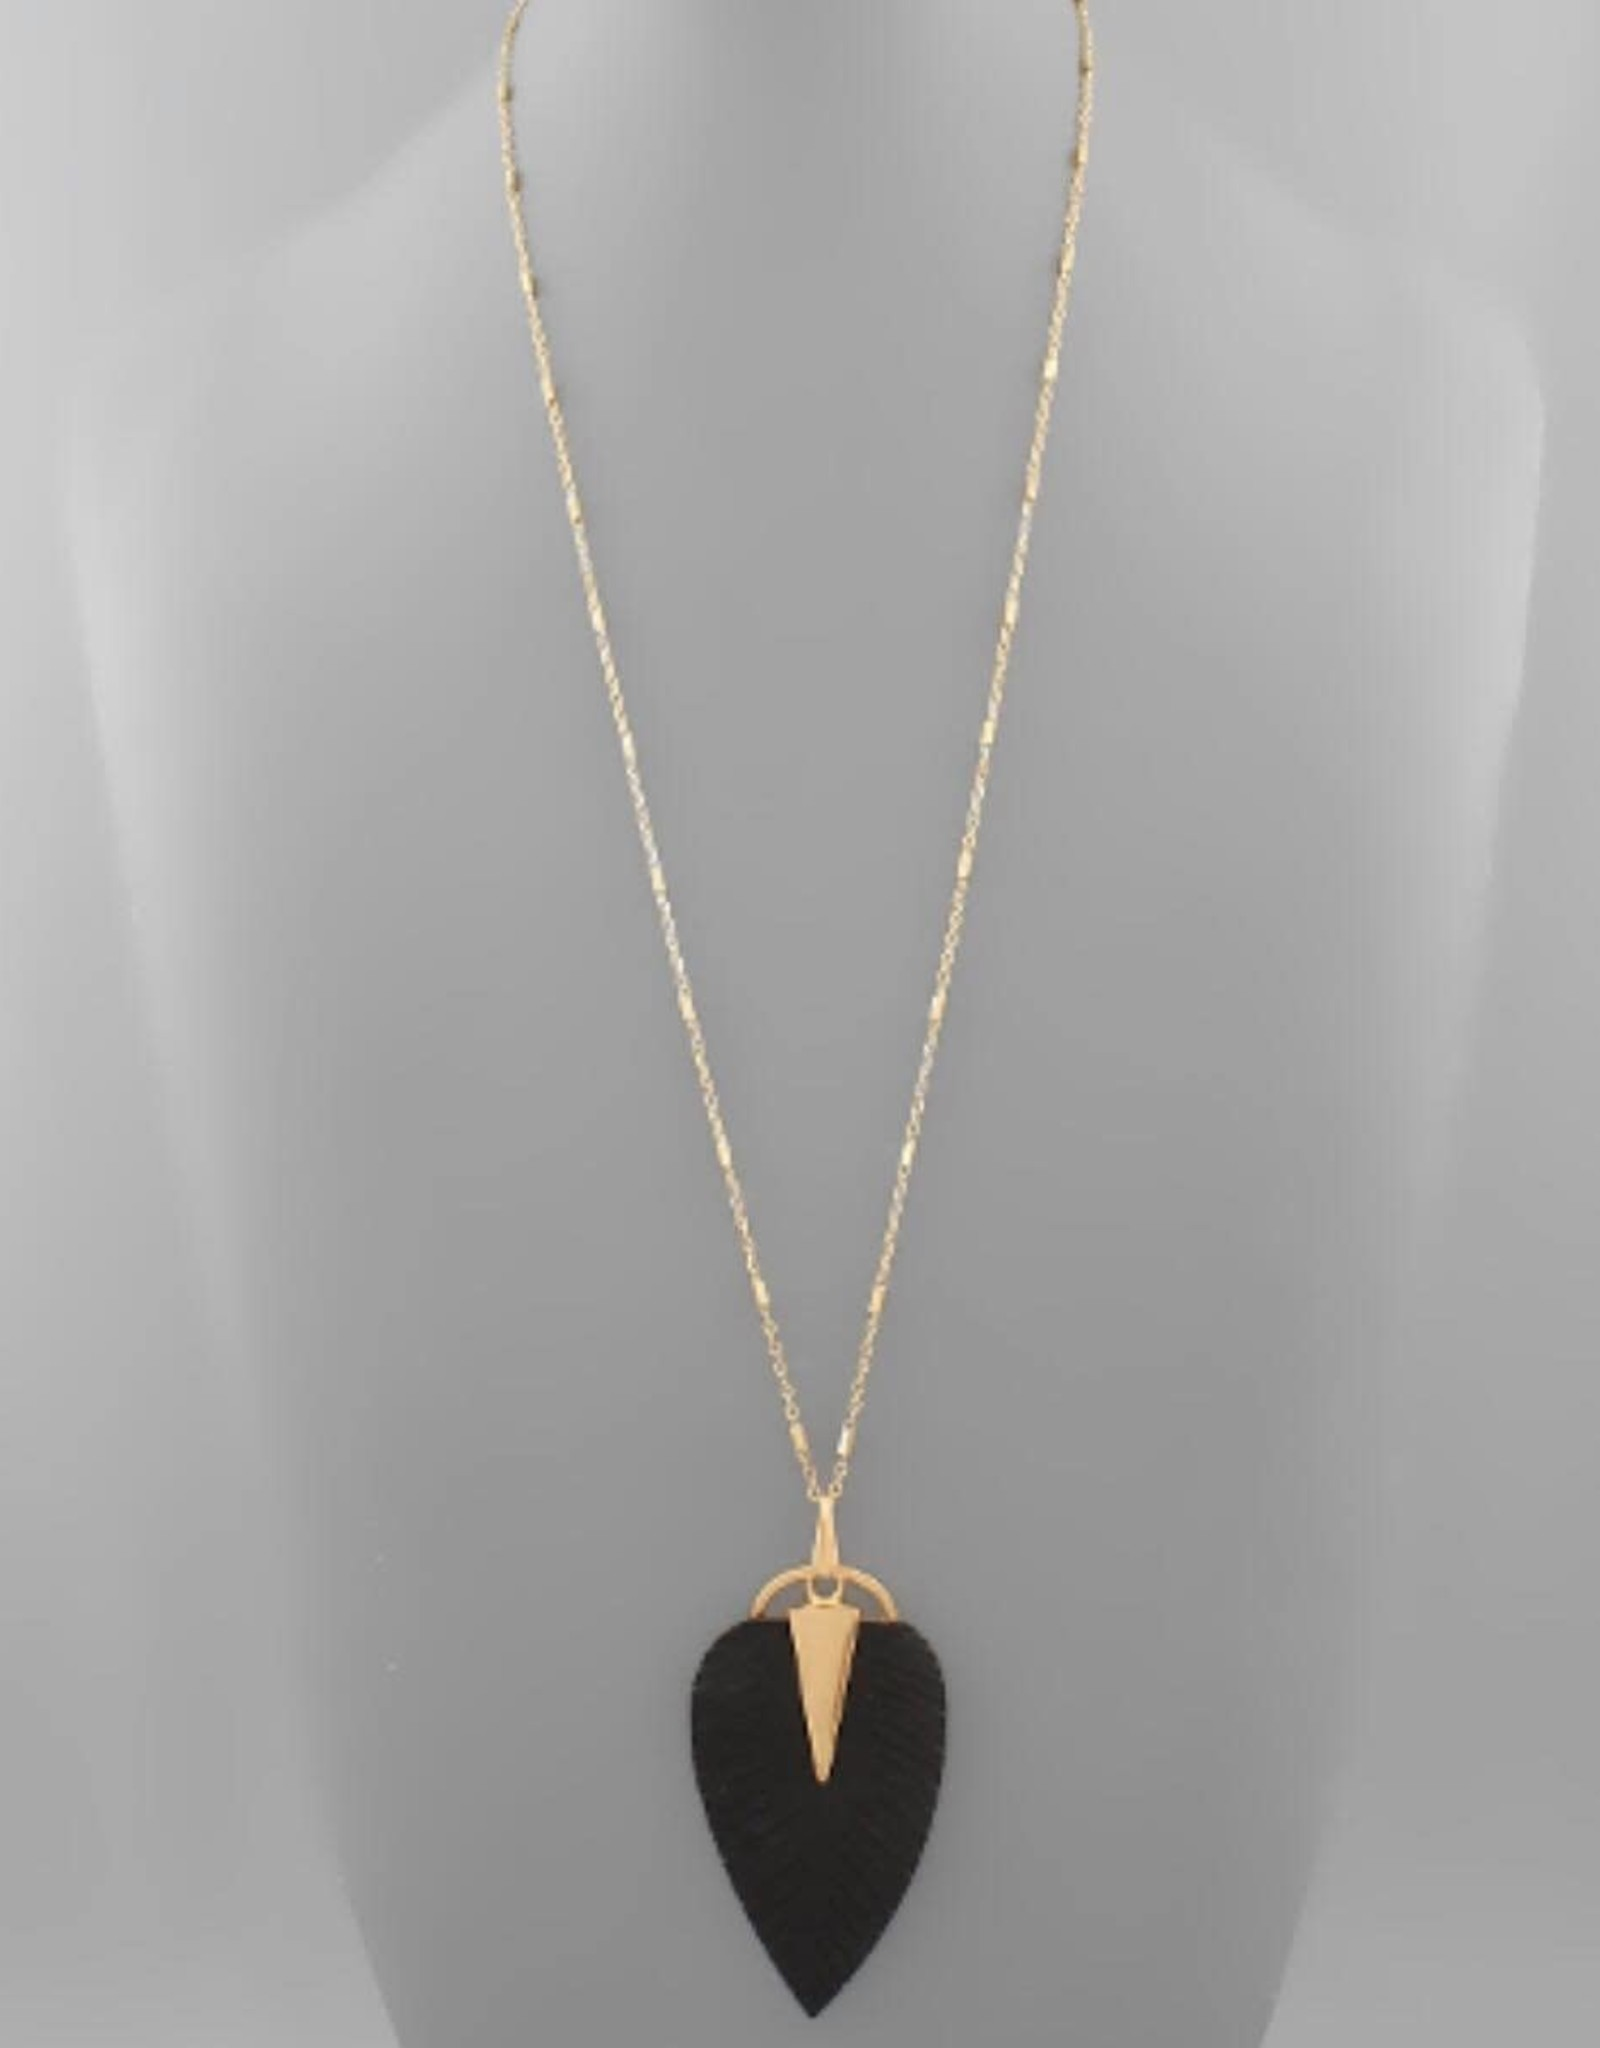 Leather Leaf Necklace in Black